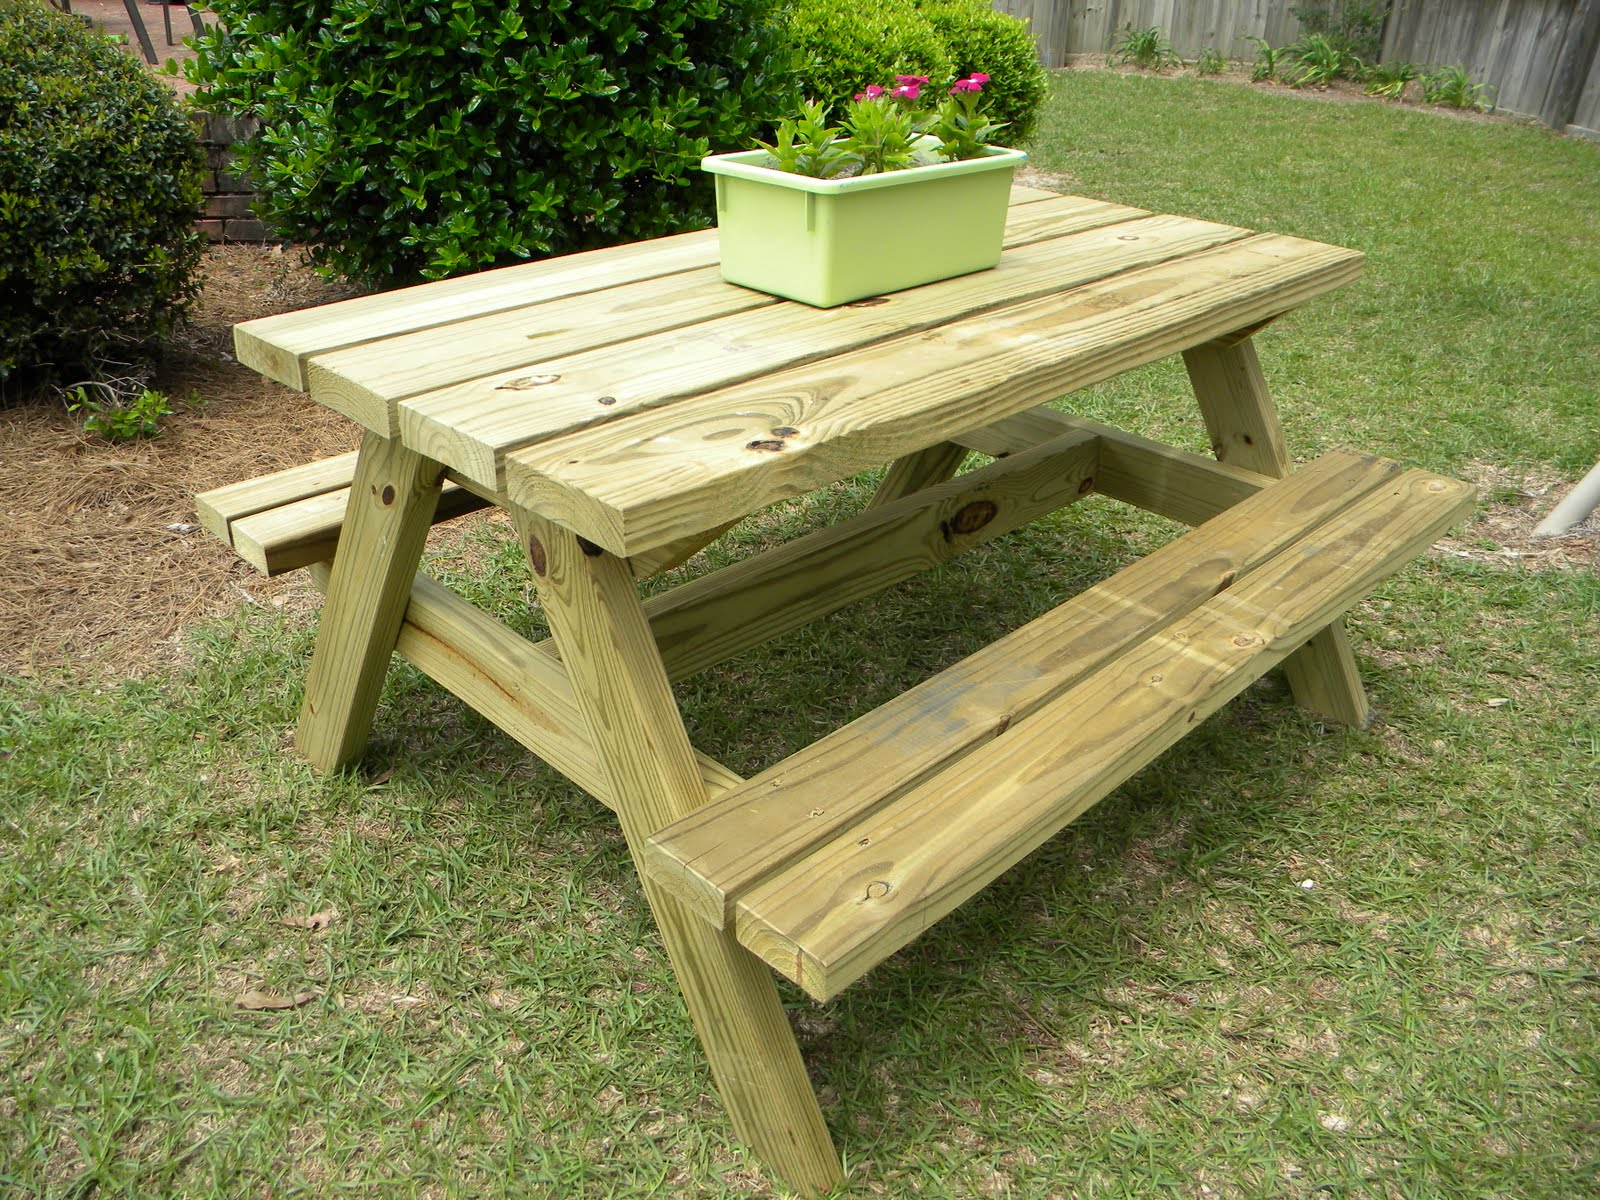 Guide to get picnic table with built in cooler plans the for Garden table designs wood